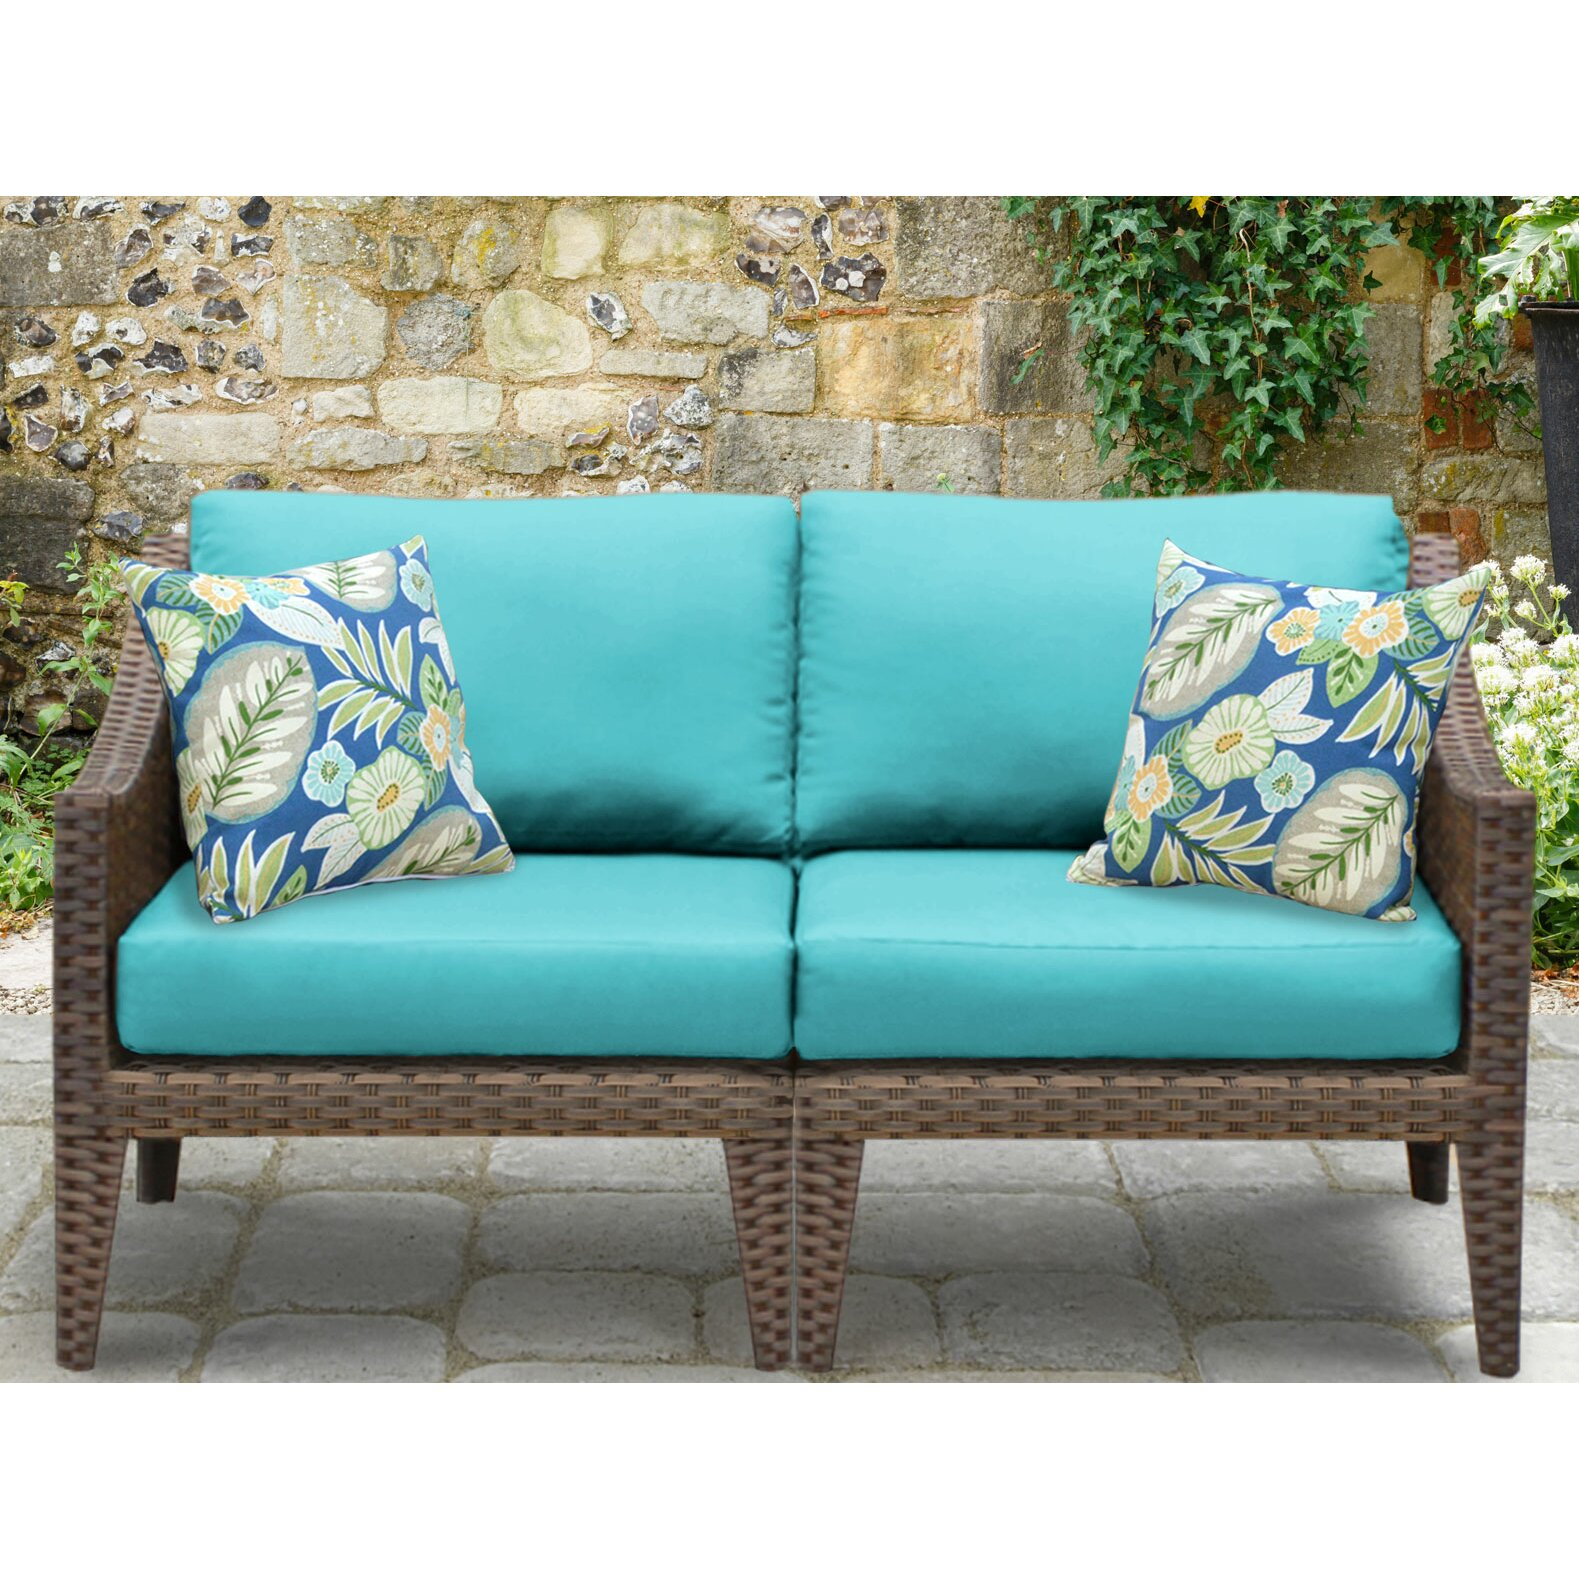 TK Classics Manhattan 2 Piece Outdoor Wicker Patio